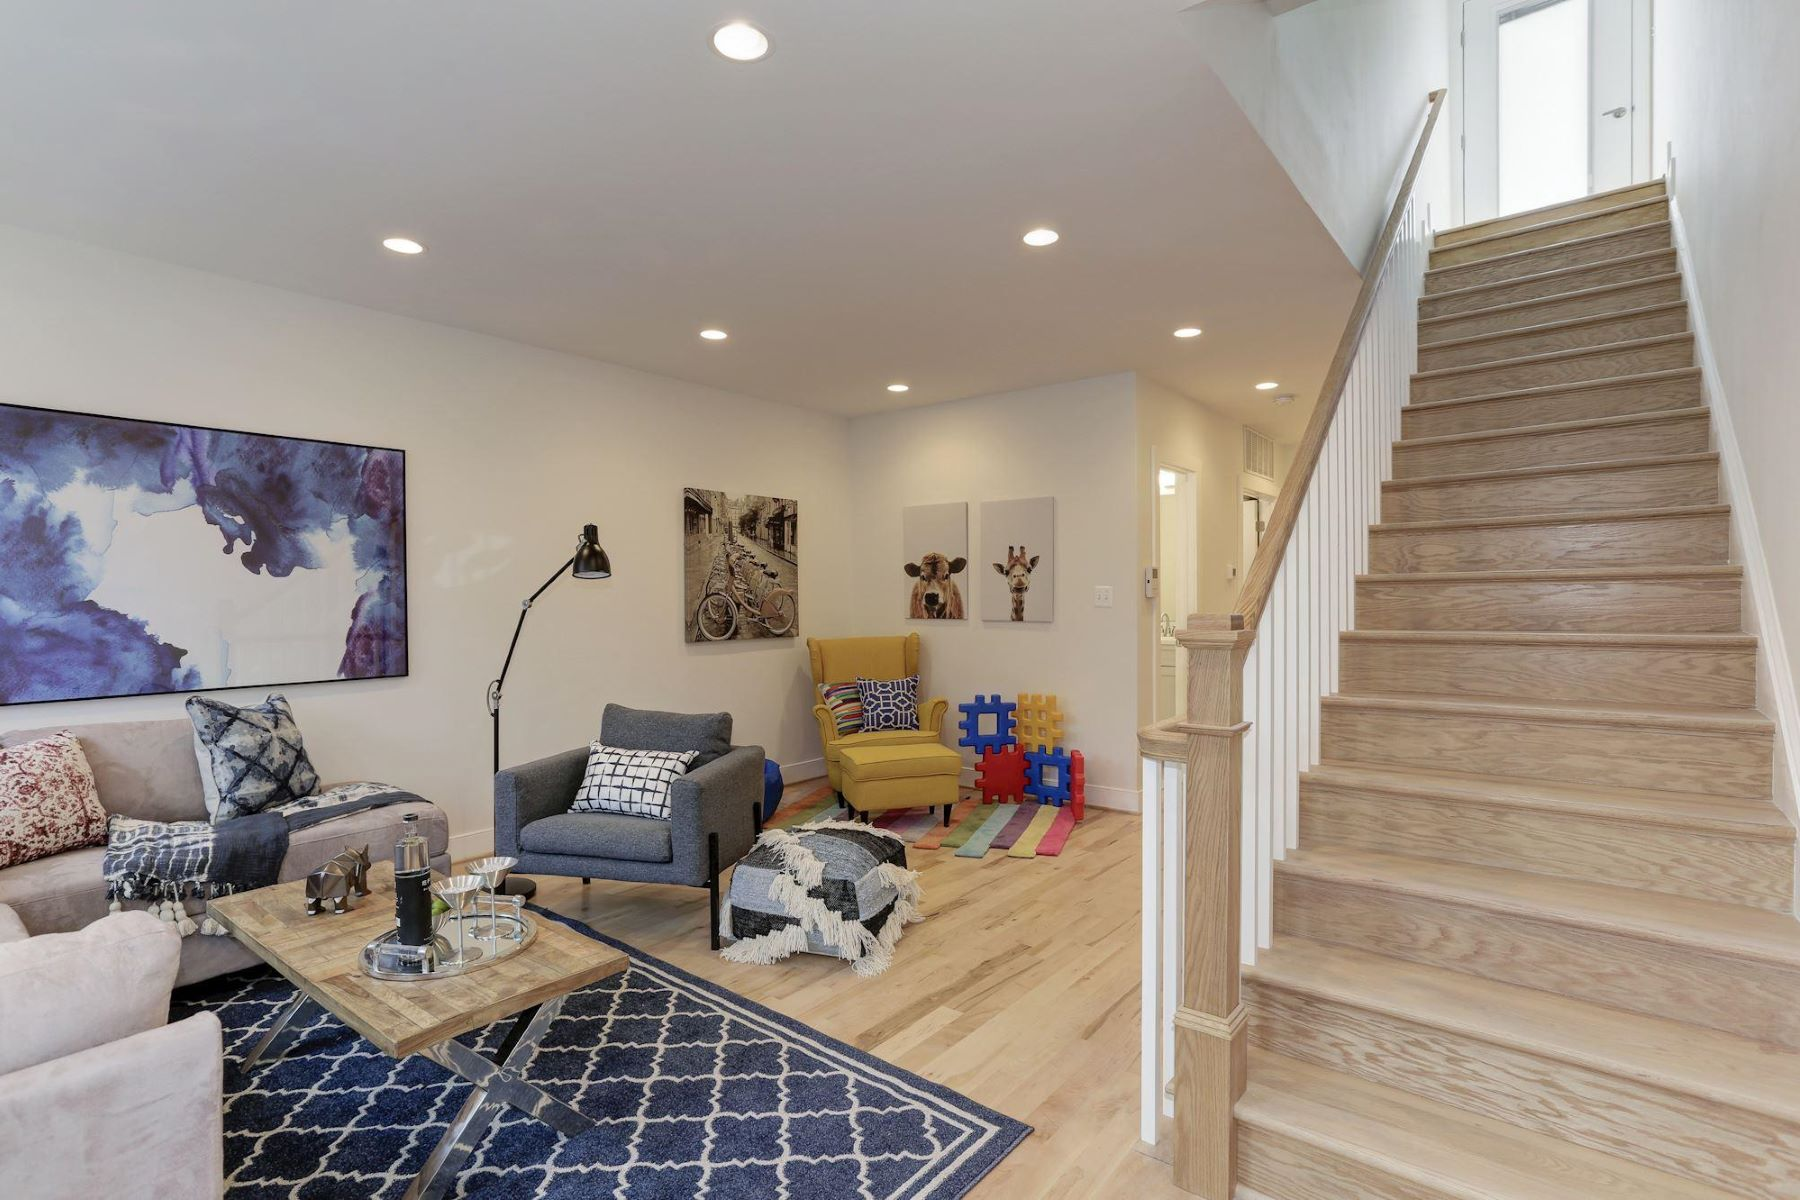 Additional photo for property listing at 1114 Monroe St NW #two Washington, District Of Columbia 20010 United States